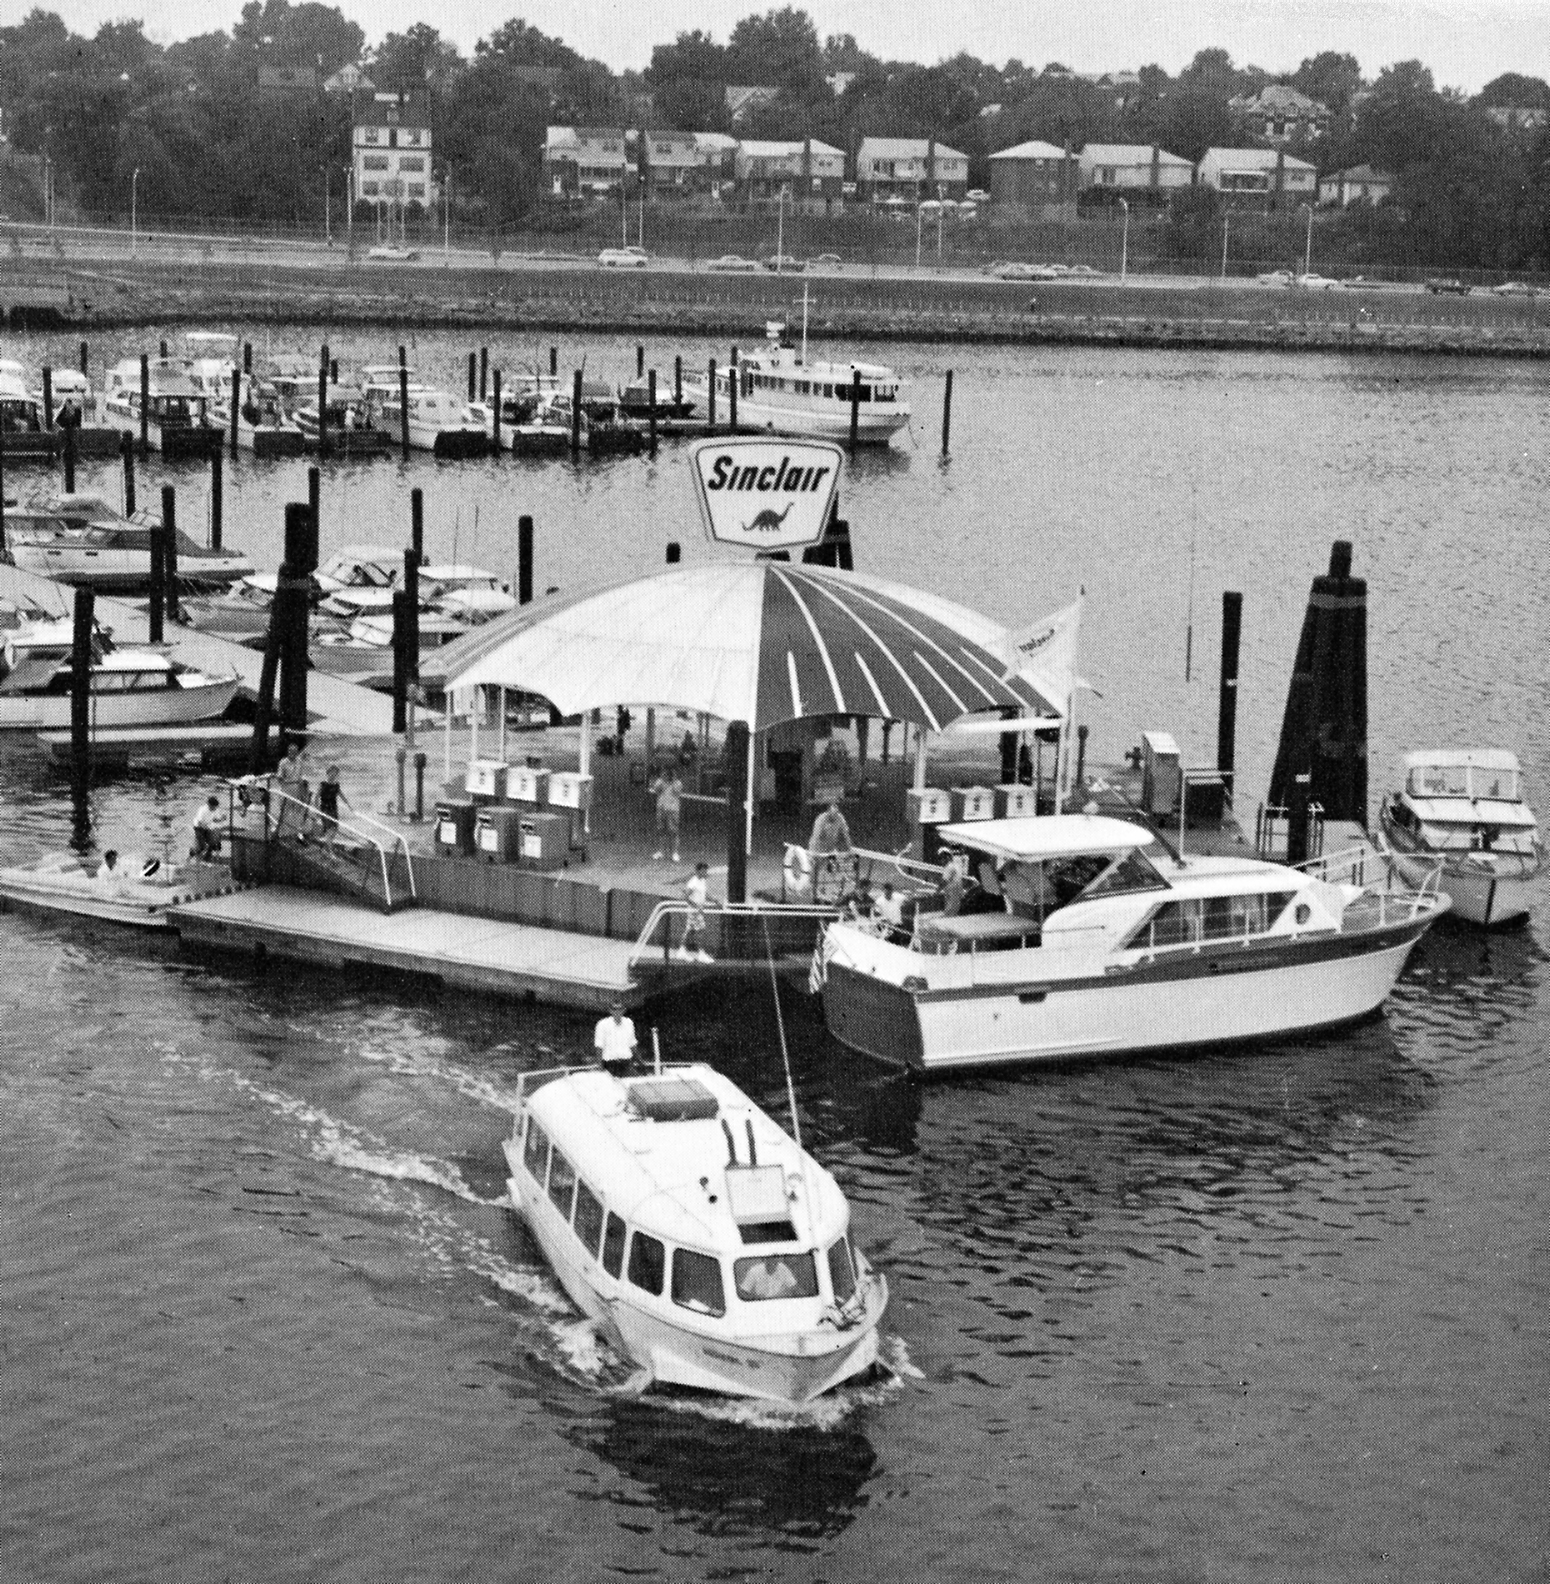 sinclair 1960s boat station